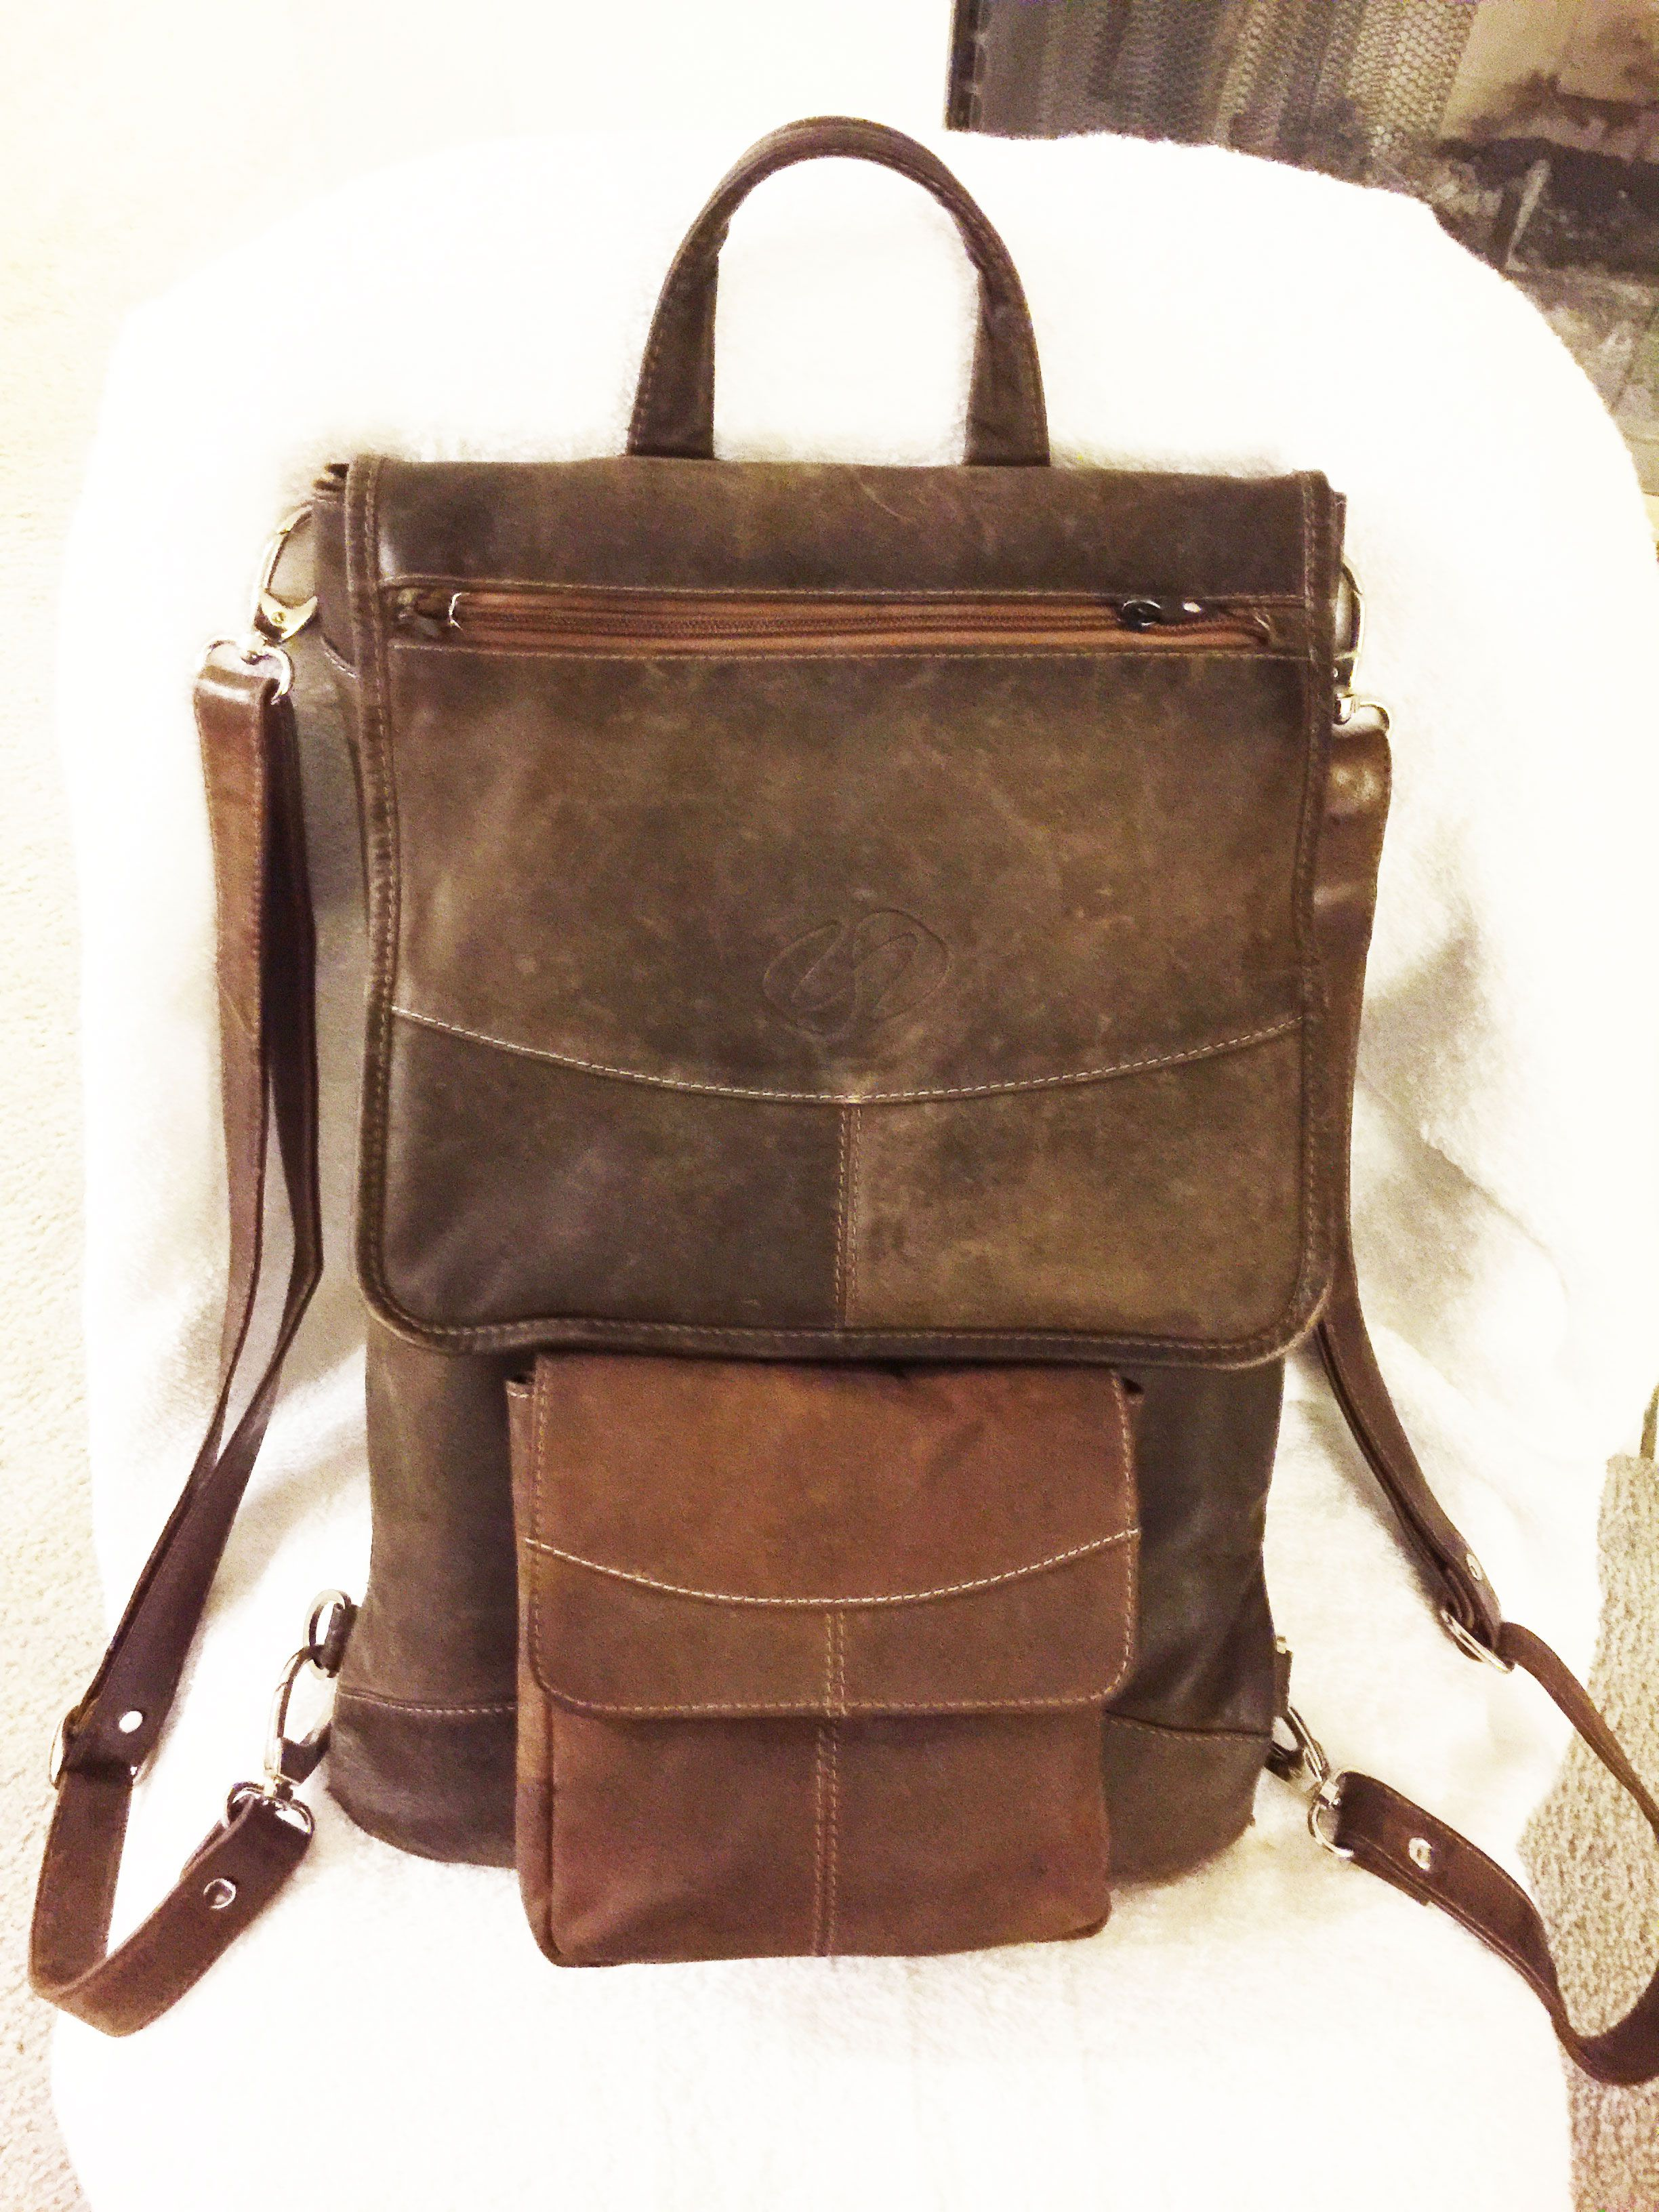 7 Year Old Maccase Premium Leather Flight Jacket What Other 200 Bag Lasts Over 7 Years And Is Still Going Strong Fro Macbook Pro Case Leather Nice Leather